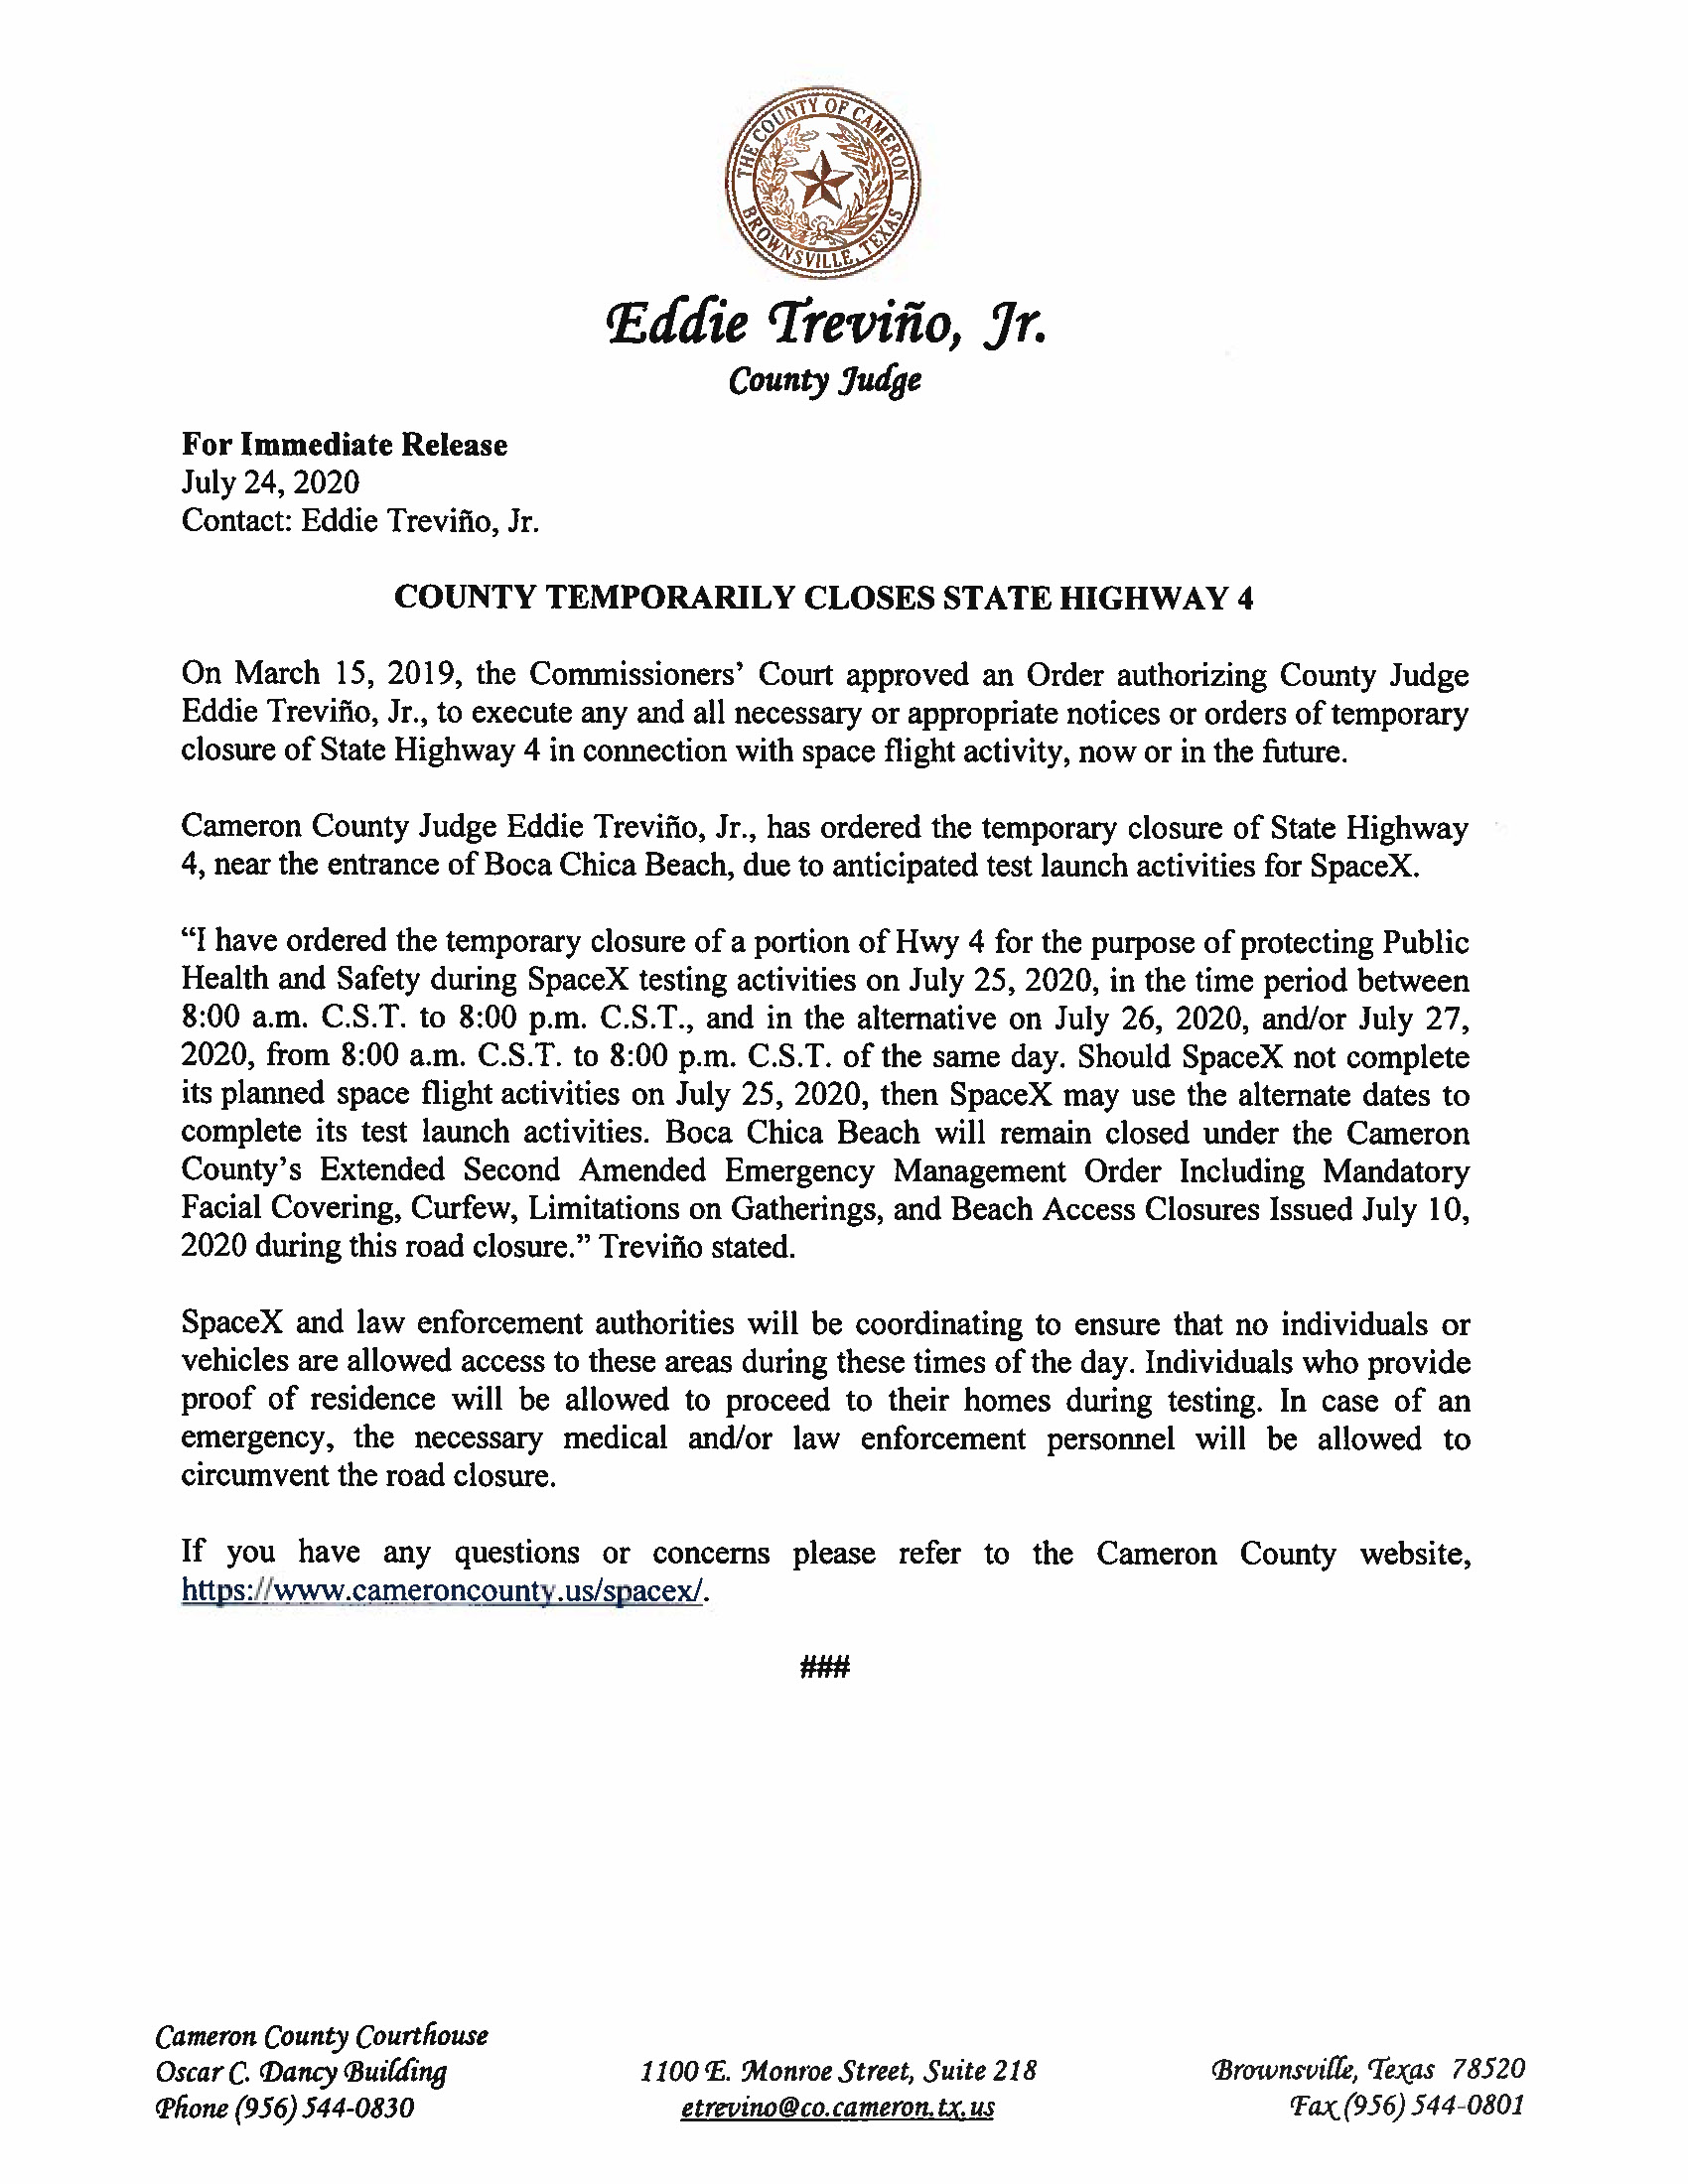 Press Release In English And Spanish.07.25.20 Page 1